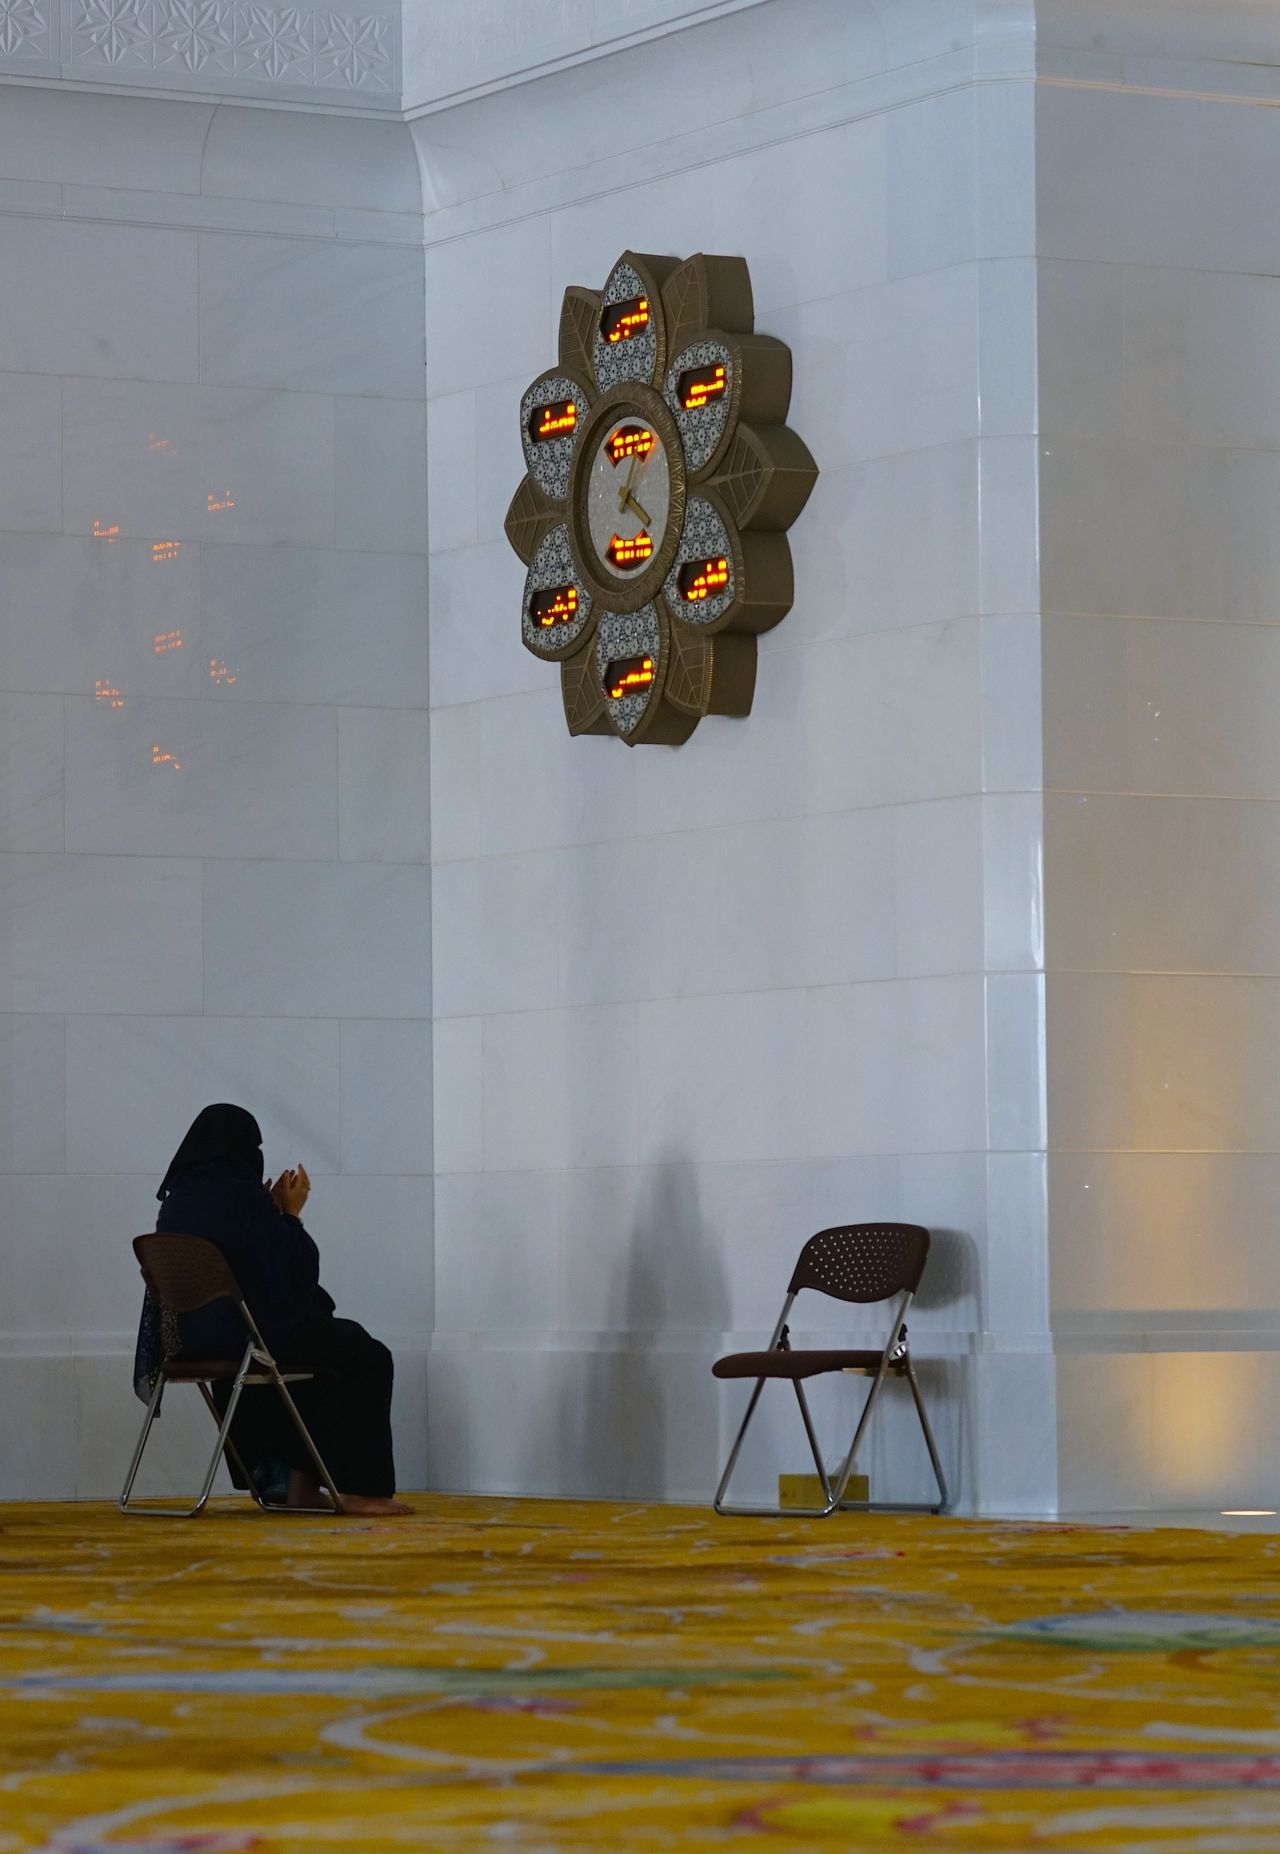 Abu Dhabi Abu Dhabi Grand Mosque Adults Only Chair Clock Indoors  Islam Mosque Munajat Muslim Culture Muslim Woman Muslim Woman Praying Non Recognizable Female One Person Prayer Prayer Time Praying Sheikh Zayed Grand Mosque Women Around The World Women Around The World Women Around The World